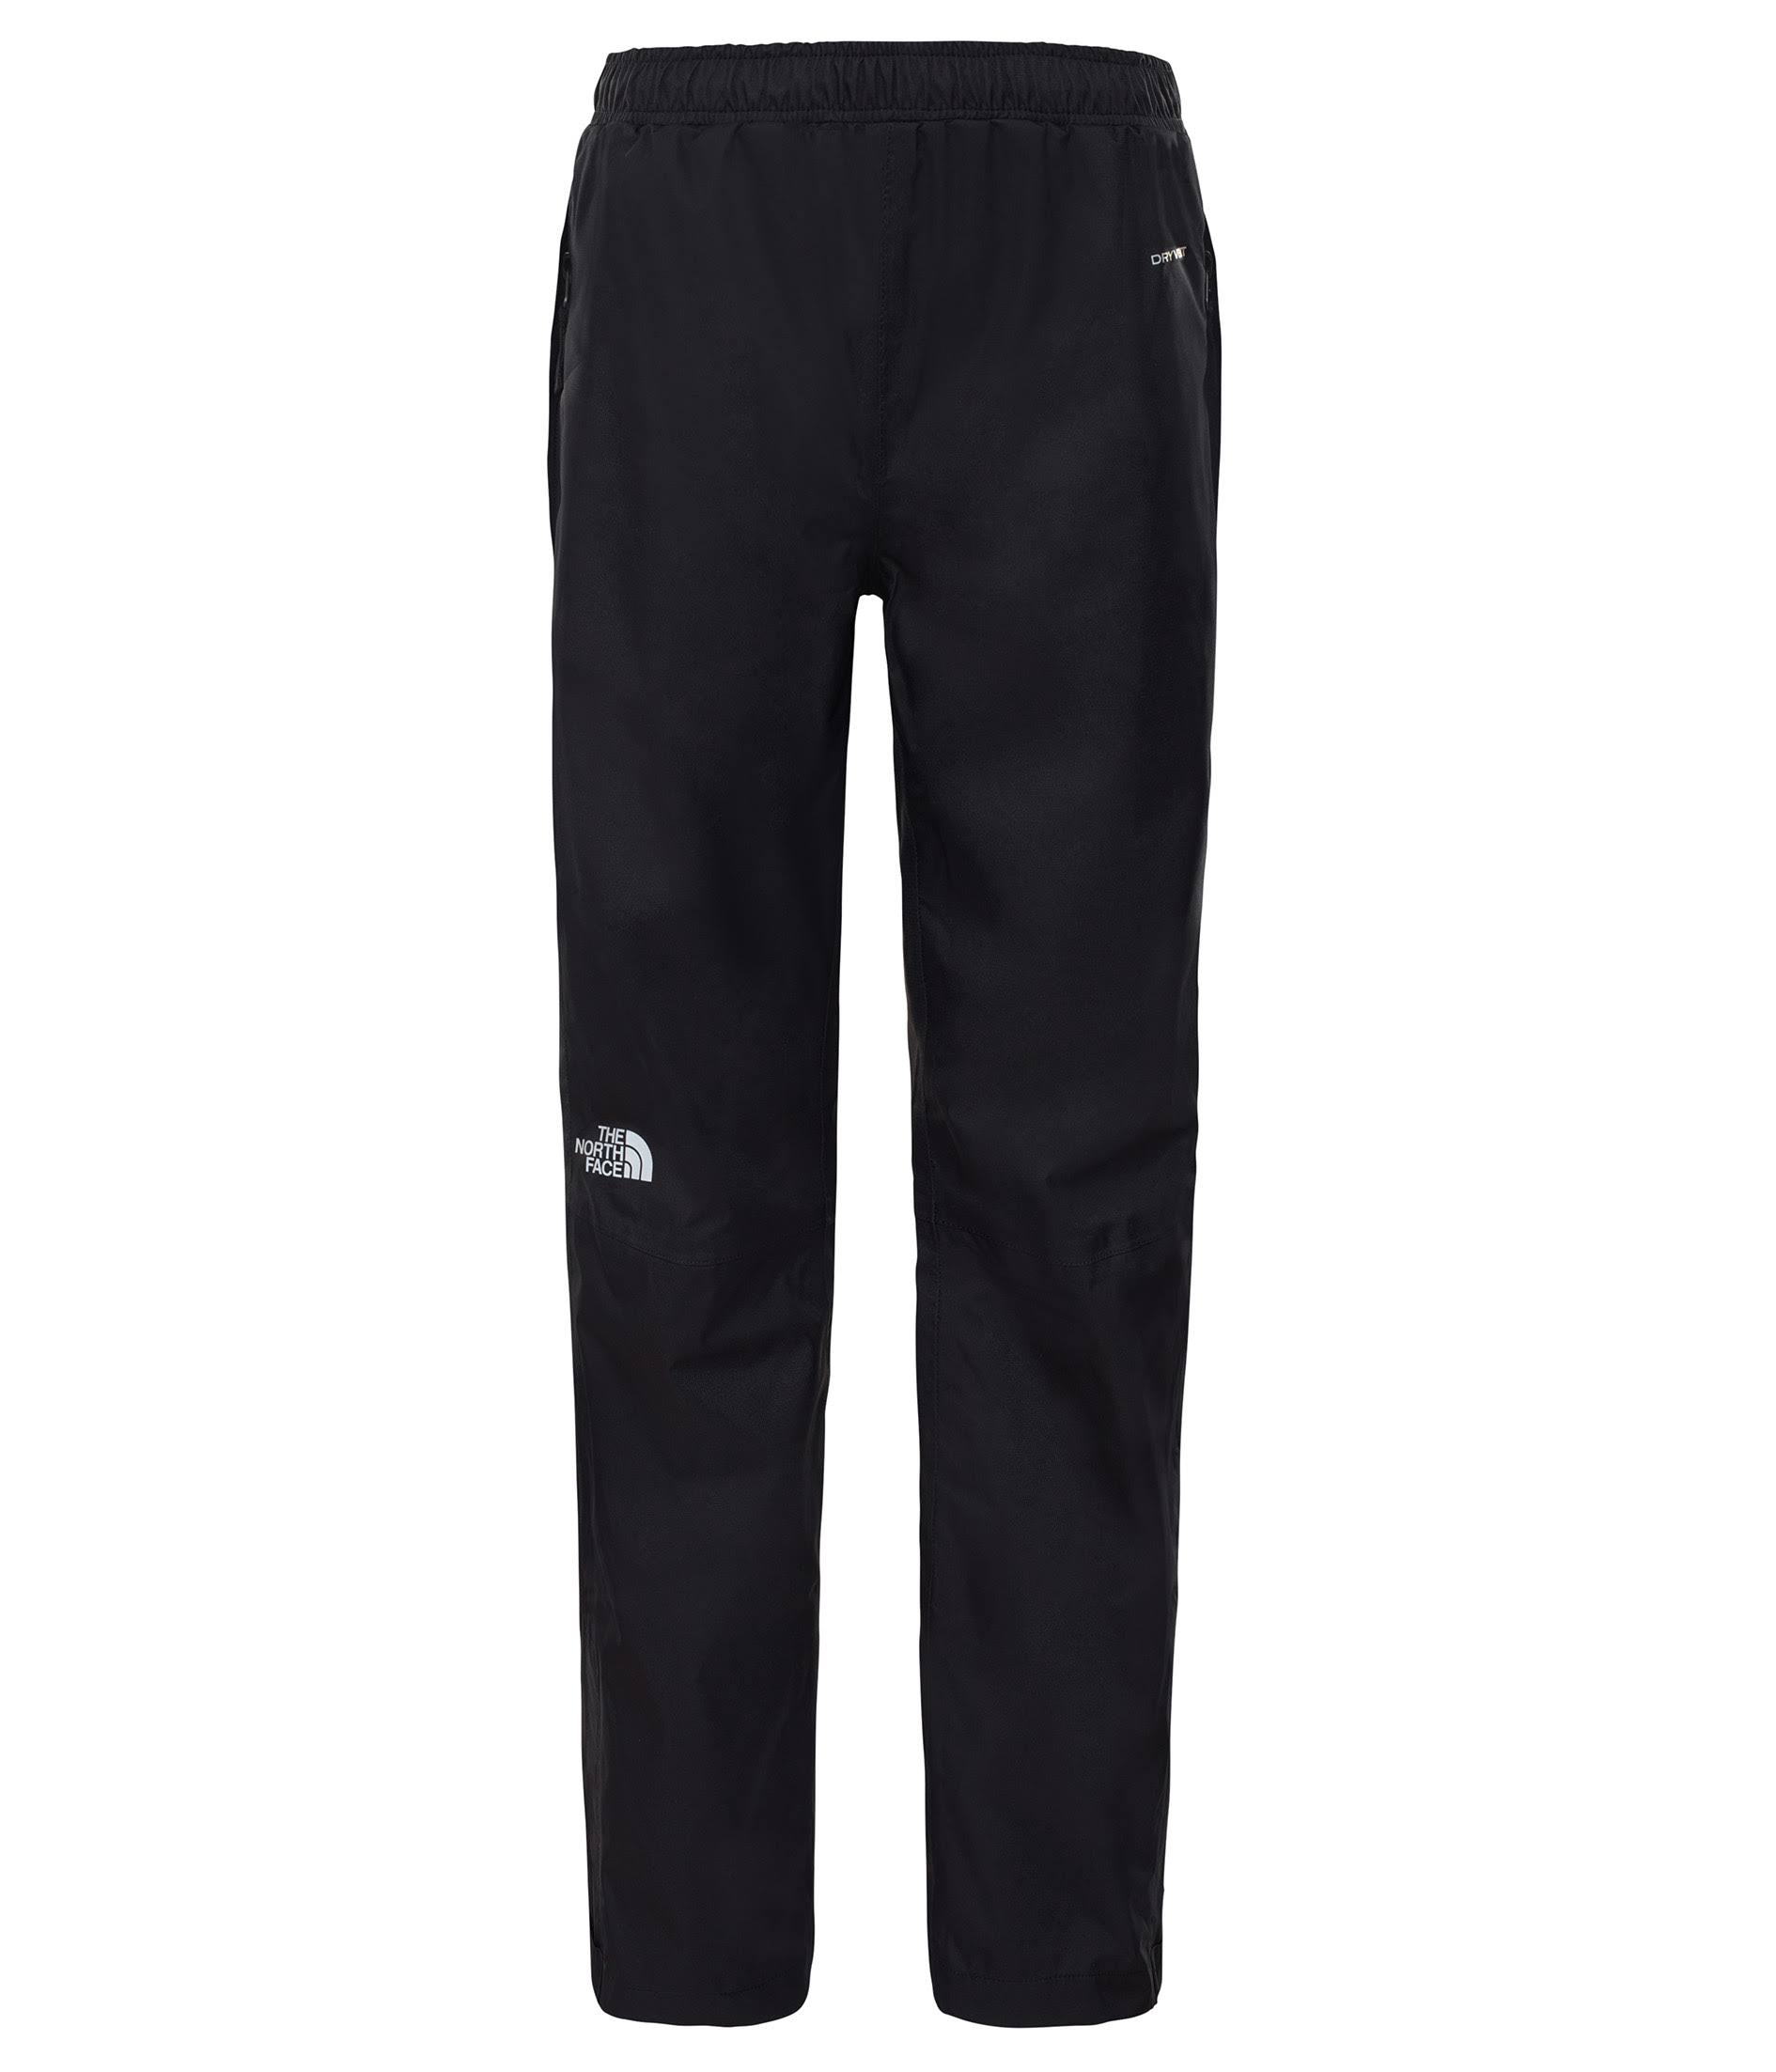 The North Face Kids Resolve Pants - Black, Large